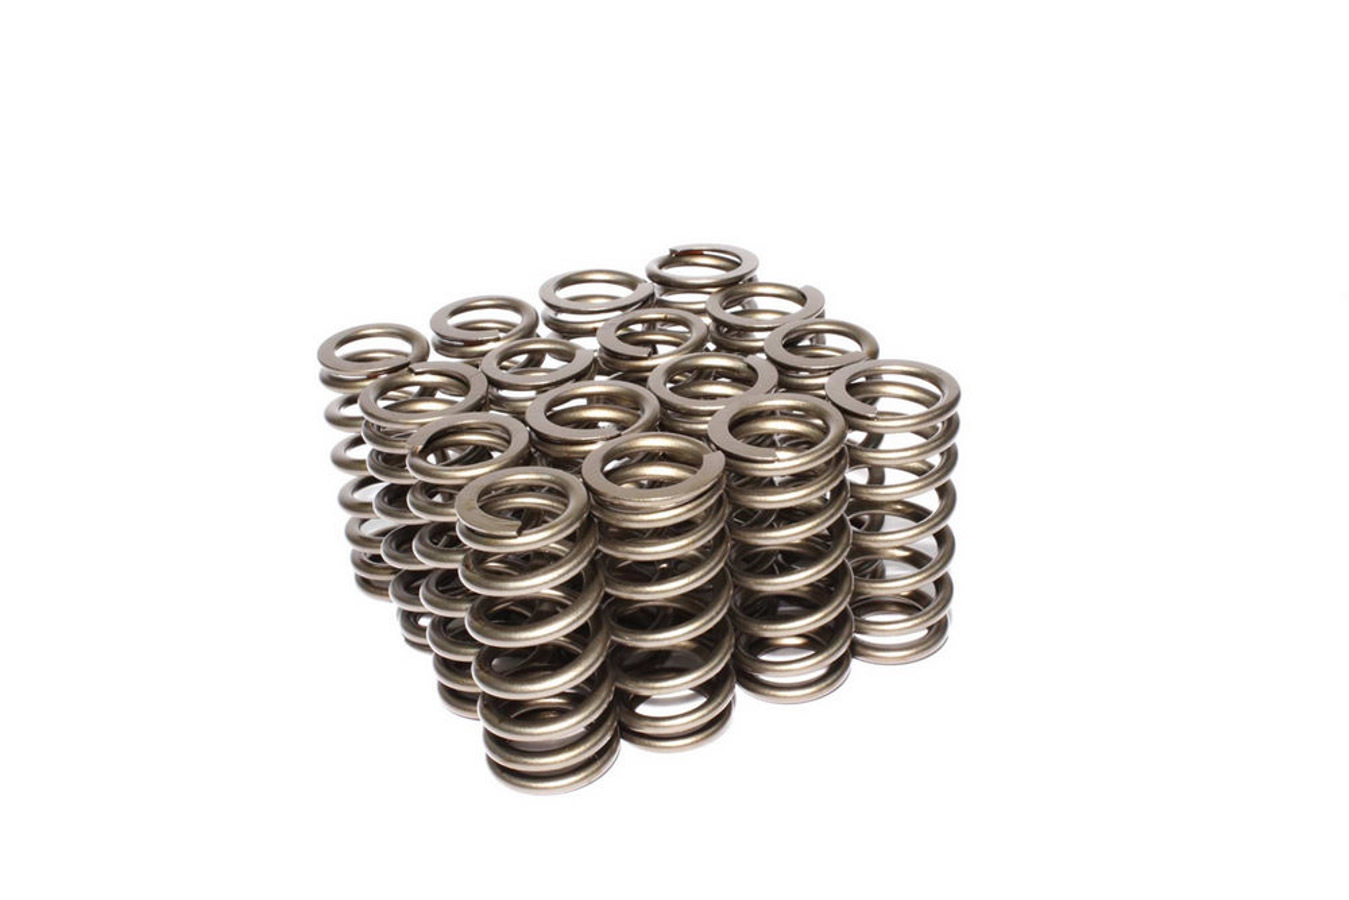 Comp Cams 26113-16 Valve Spring, Performance Street, Beehive Spring, 191 lb/in Spring Rate, 0.952 in Coil Bind, 1.061 in OD, Set of 16